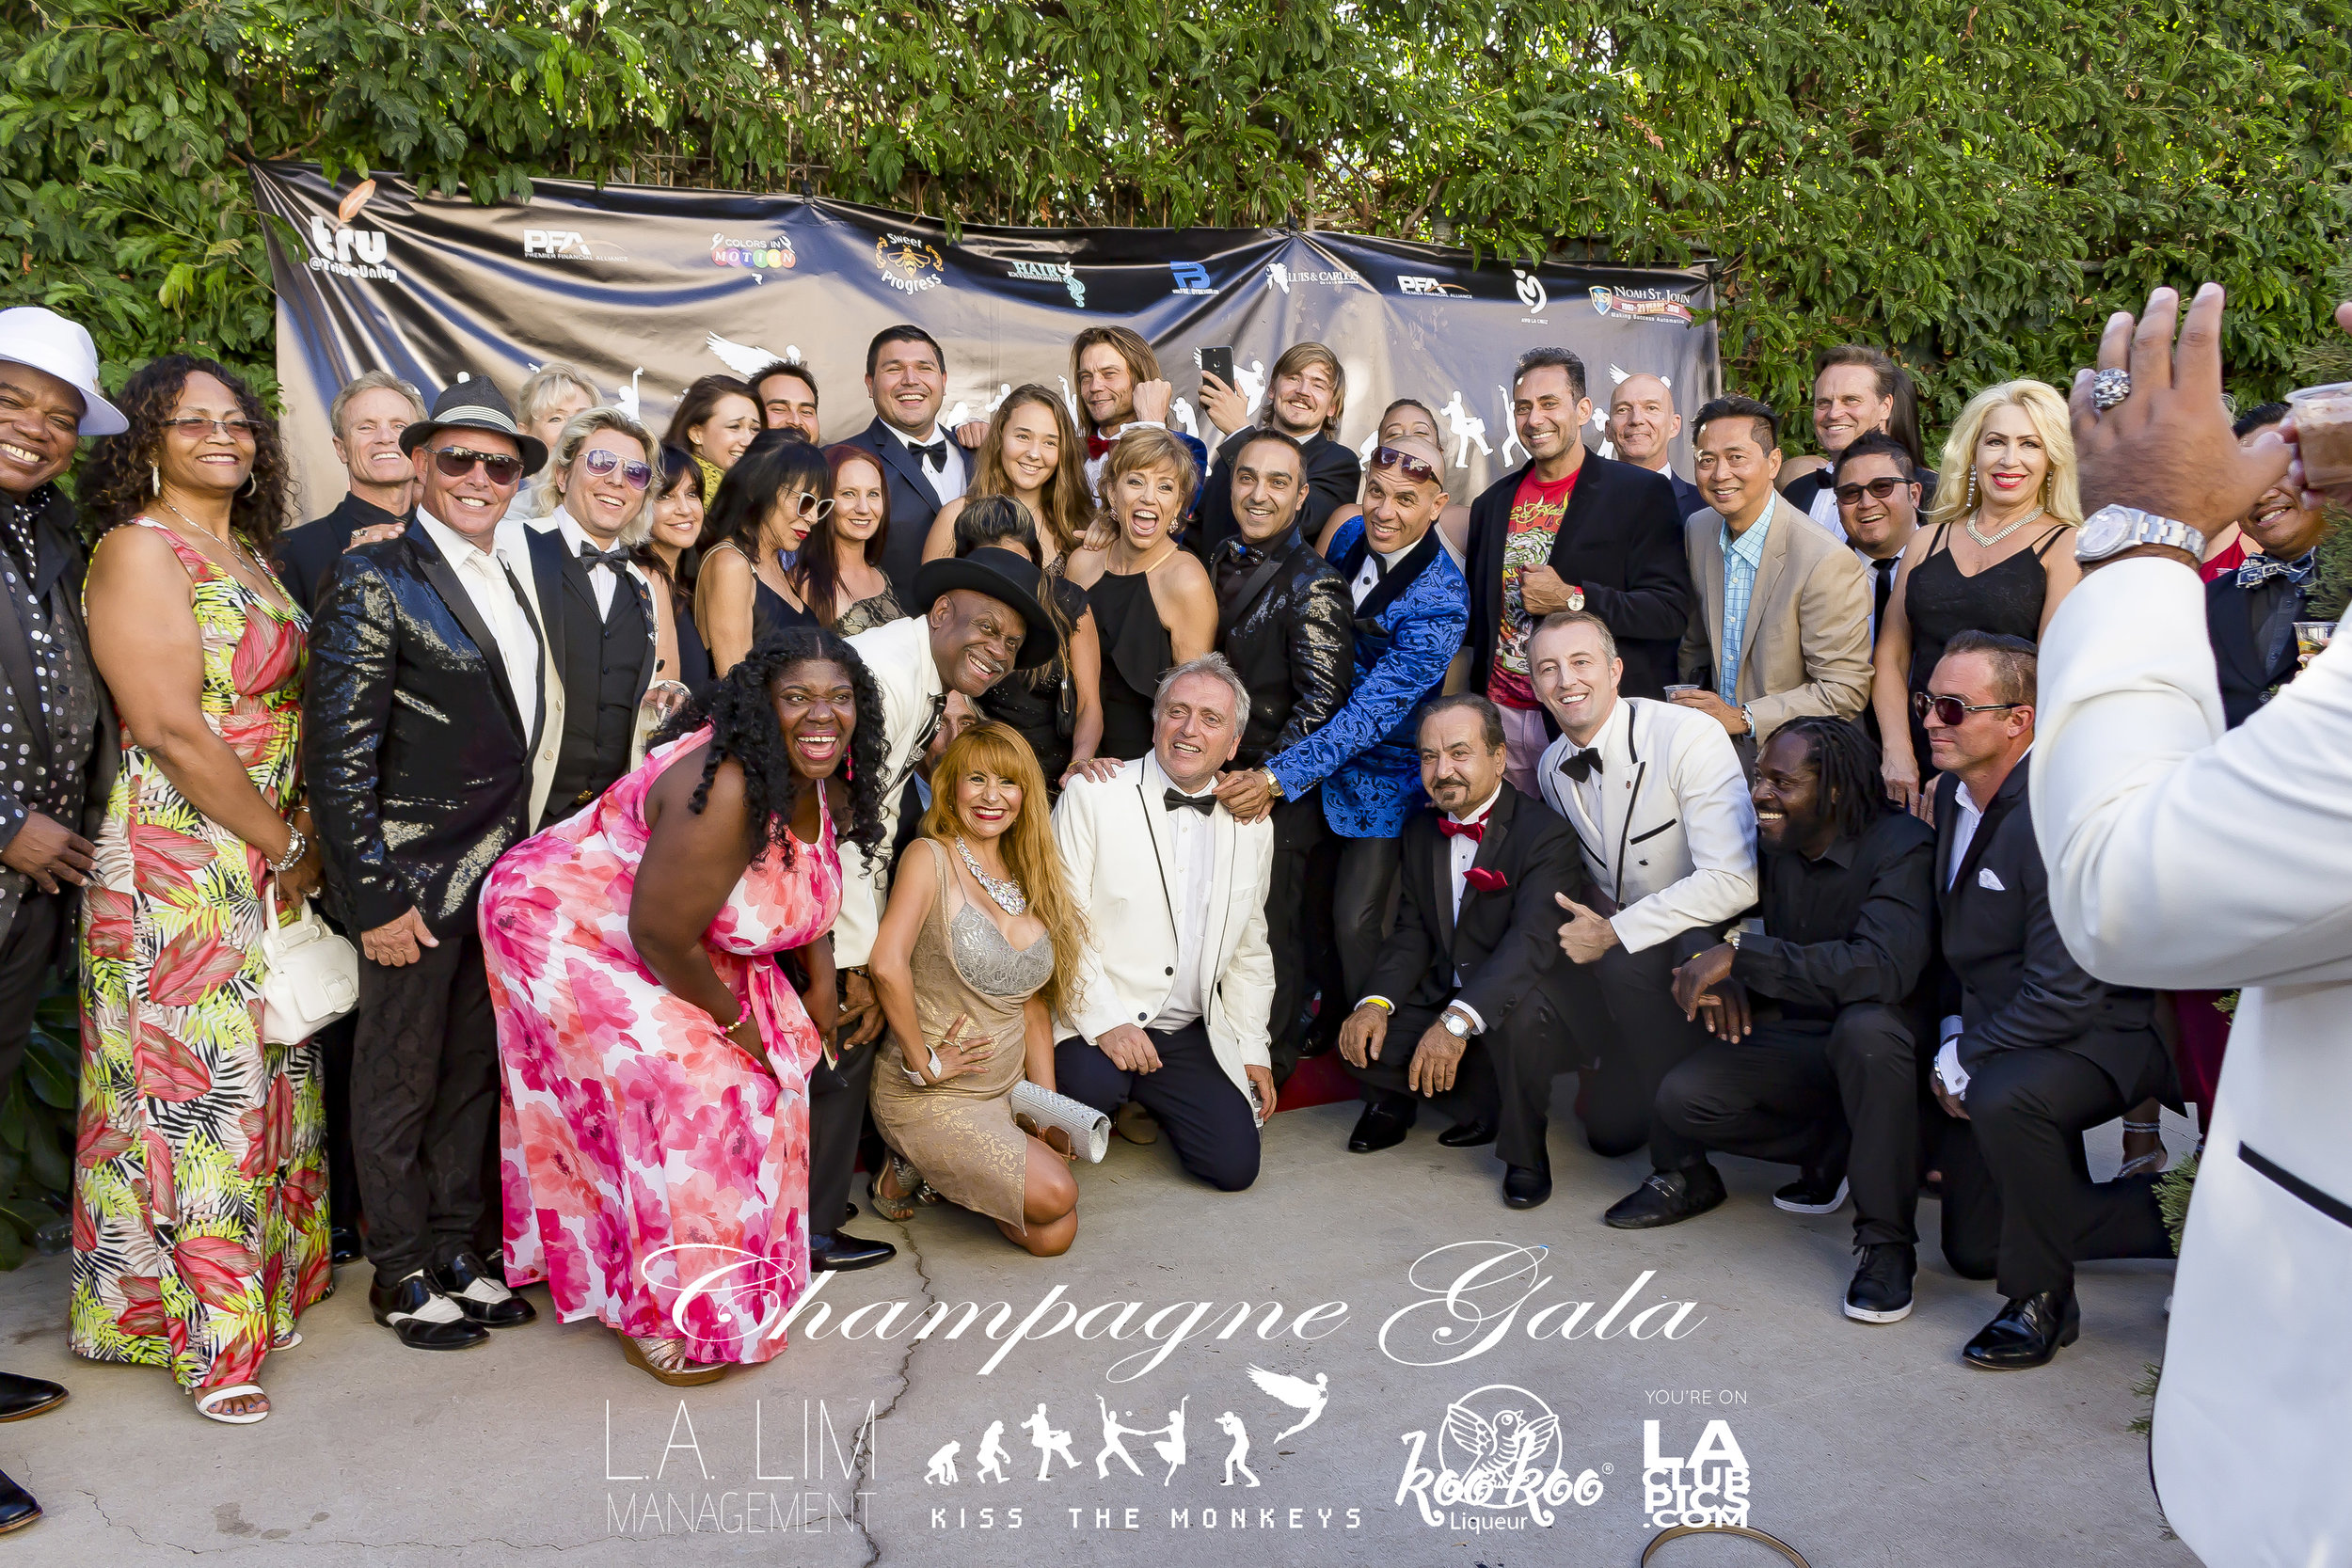 Kiss The Monkeys - Champagne Gala - 07-21-18_55.jpg